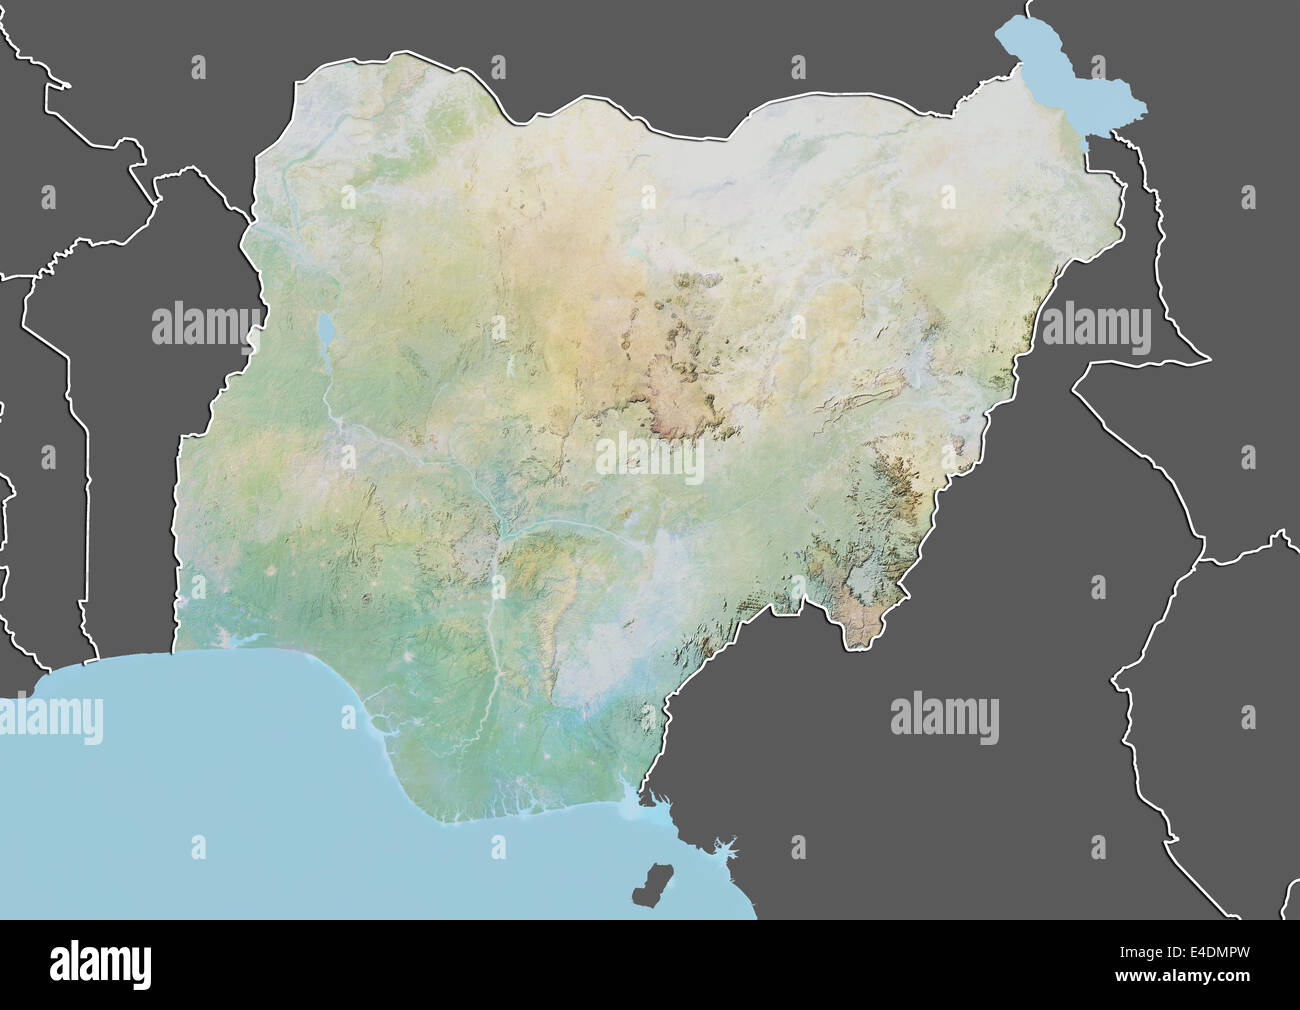 Map satellite geography nigeria stock photos map satellite nigeria relief map with border and mask stock image ccuart Gallery